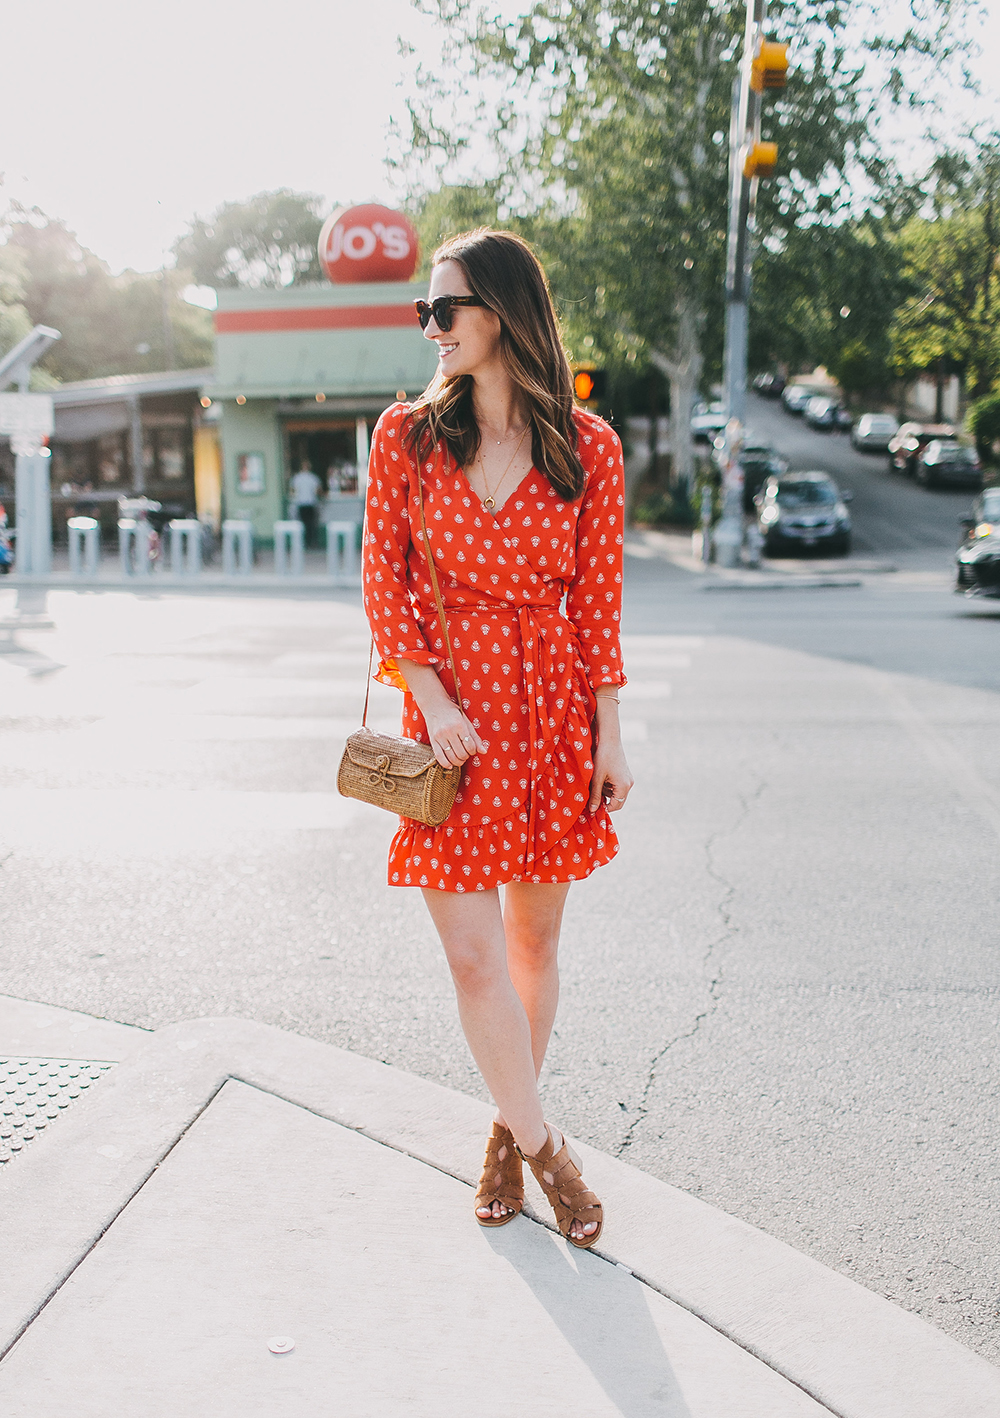 livvyland-blog-olivia-watson-sezane-wrap-dress-date-night-work-outfit-idea-poppy-red-olivia-watson-austin-texas-fashion-lifestyle-blogger-8